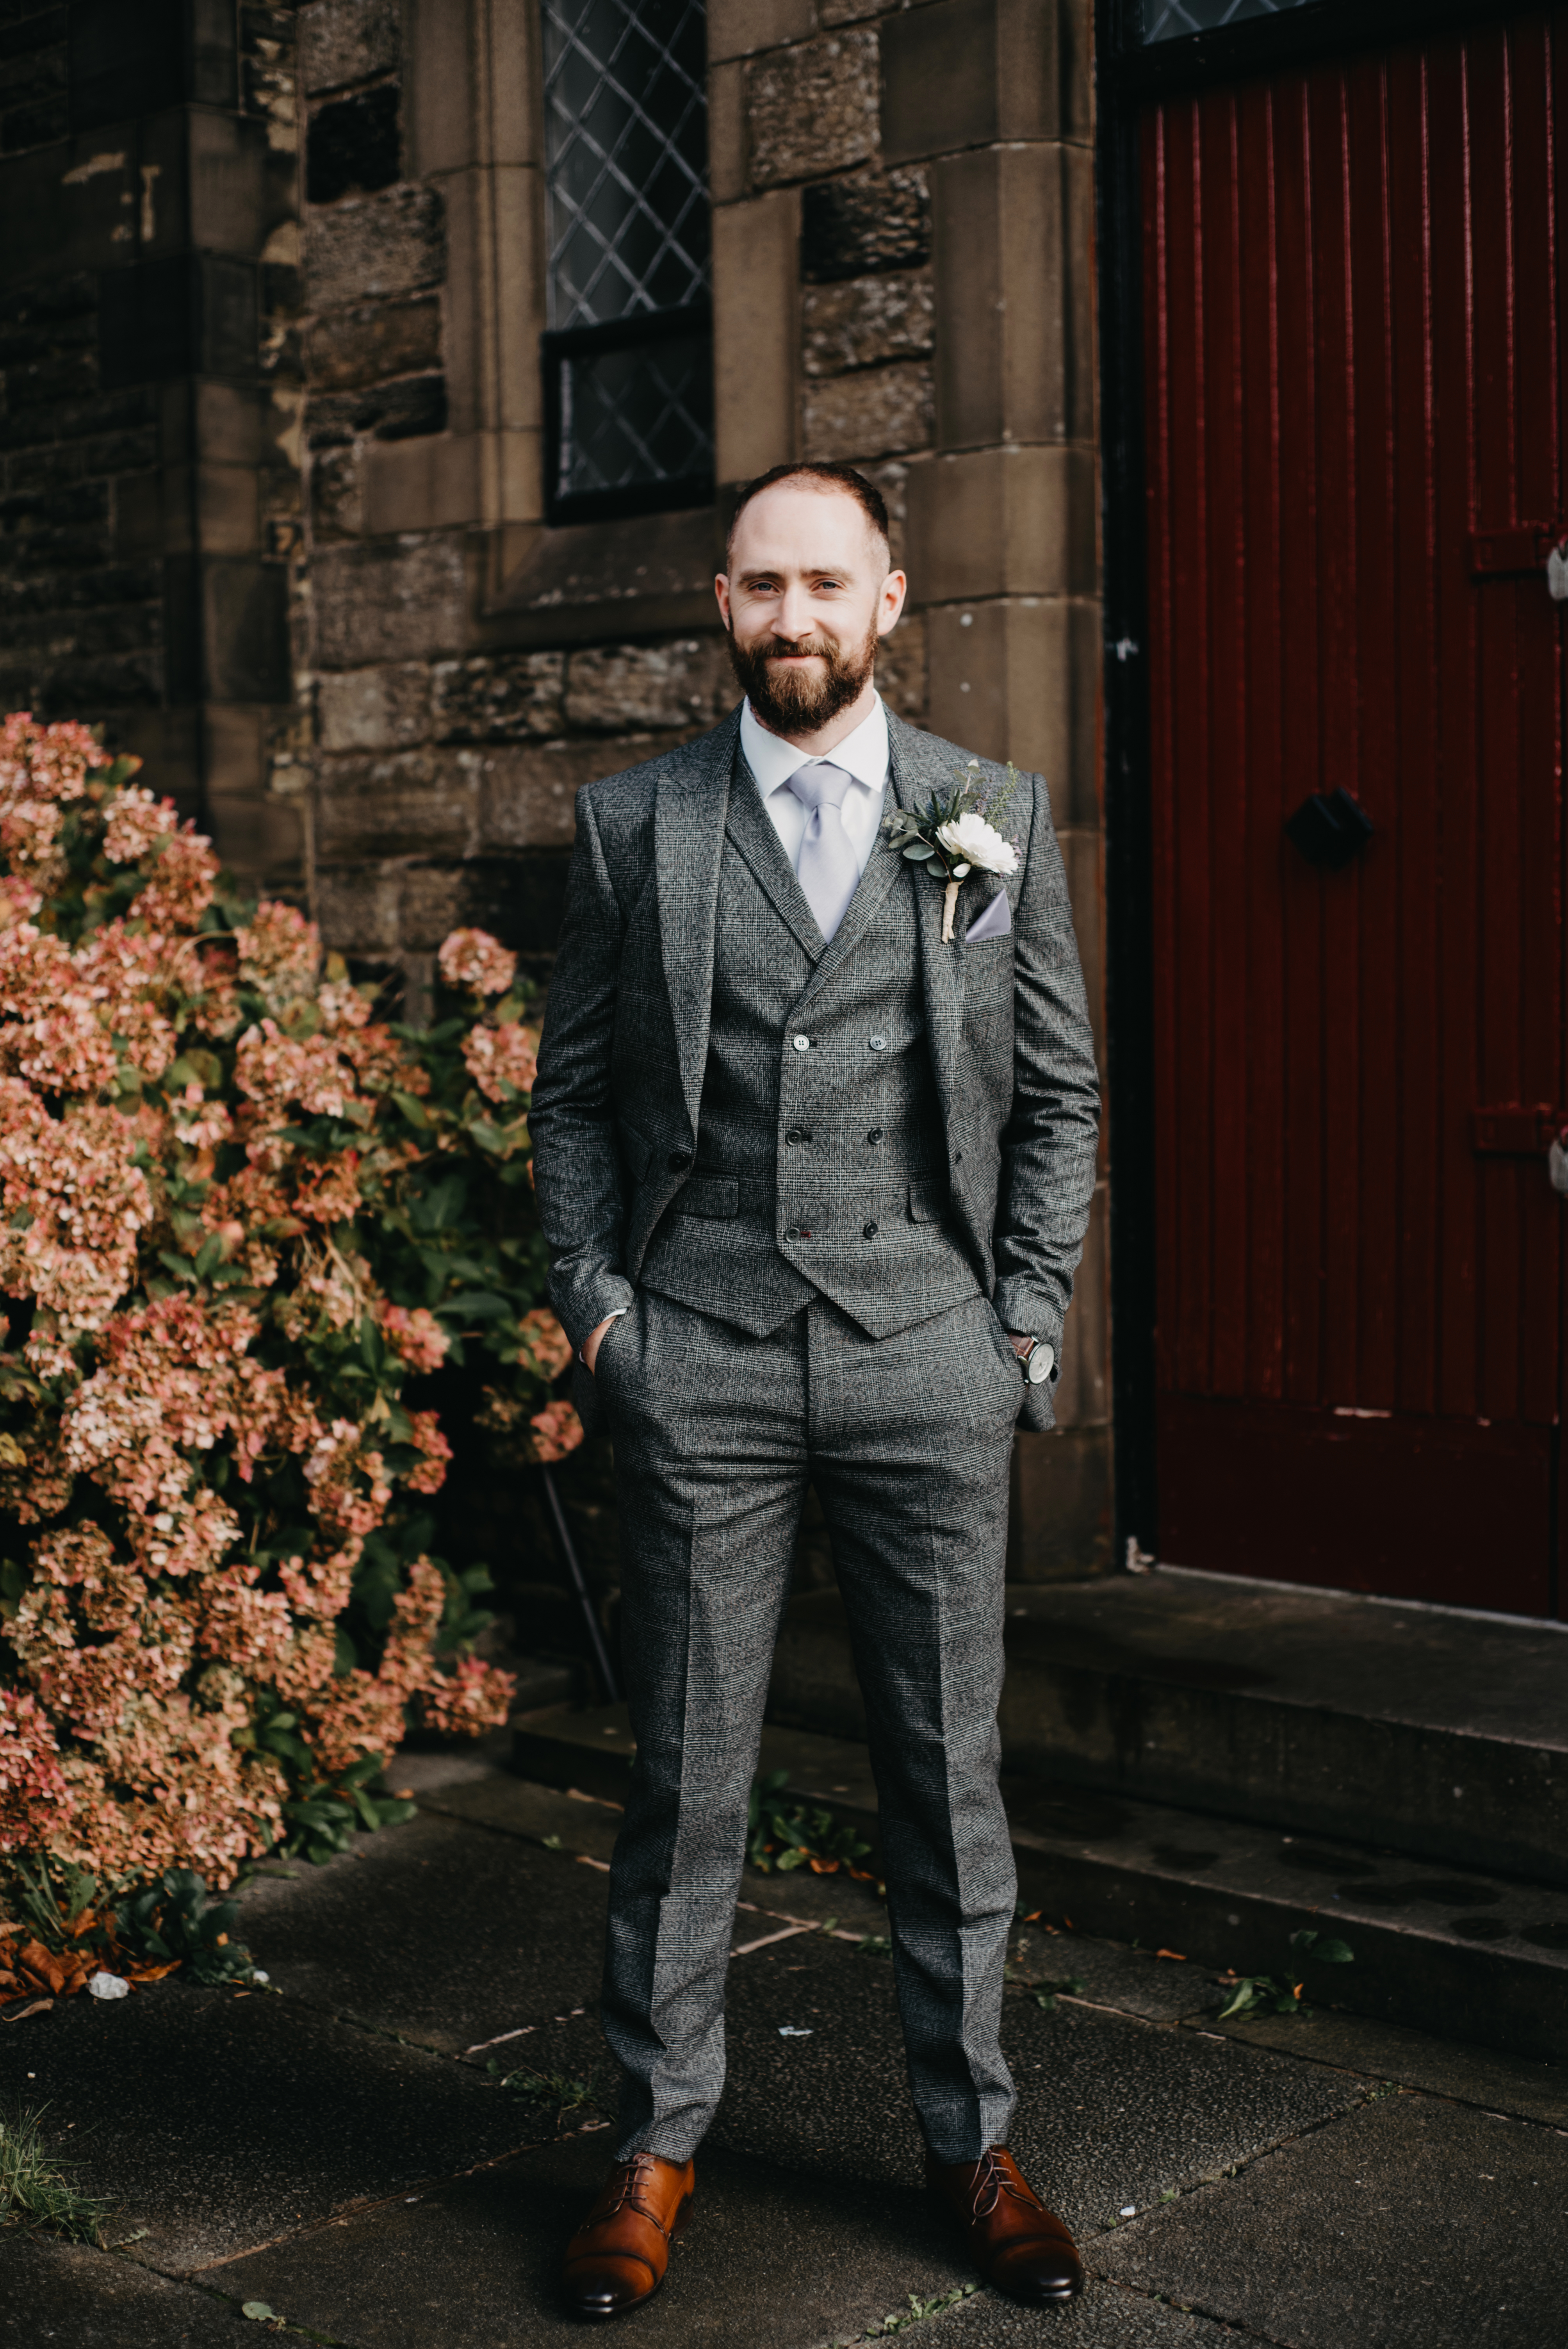 A groom all dressed up for his wedding